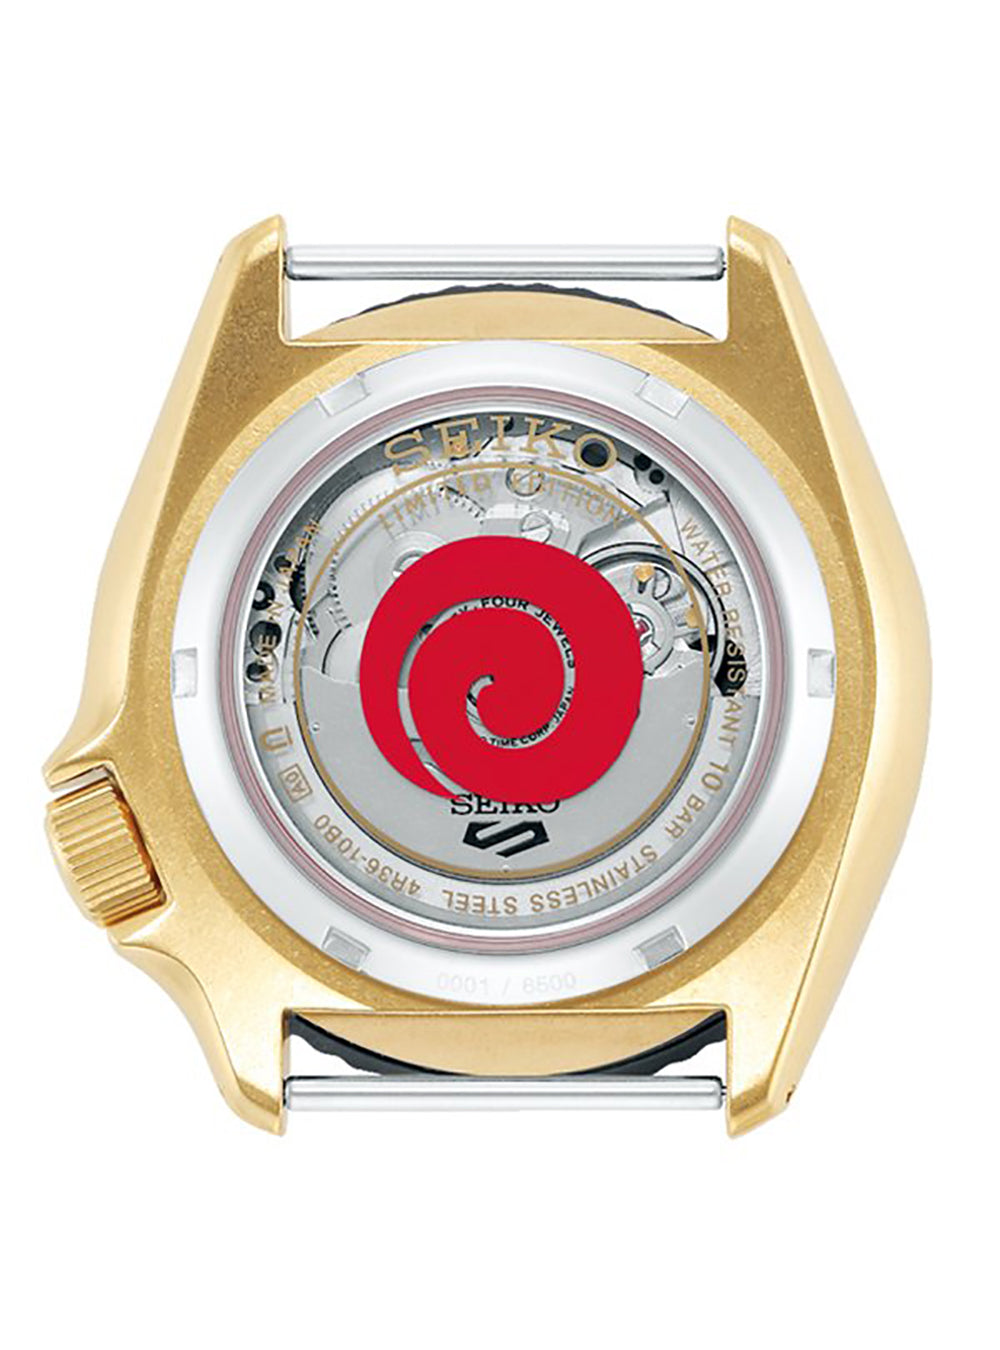 SEIKO 5 SPORTS NARUTO & BORUTO LIMITED EDITION NARUTO UZUMAKI MODEL SBSA092 MADE IN JAPAN JDM